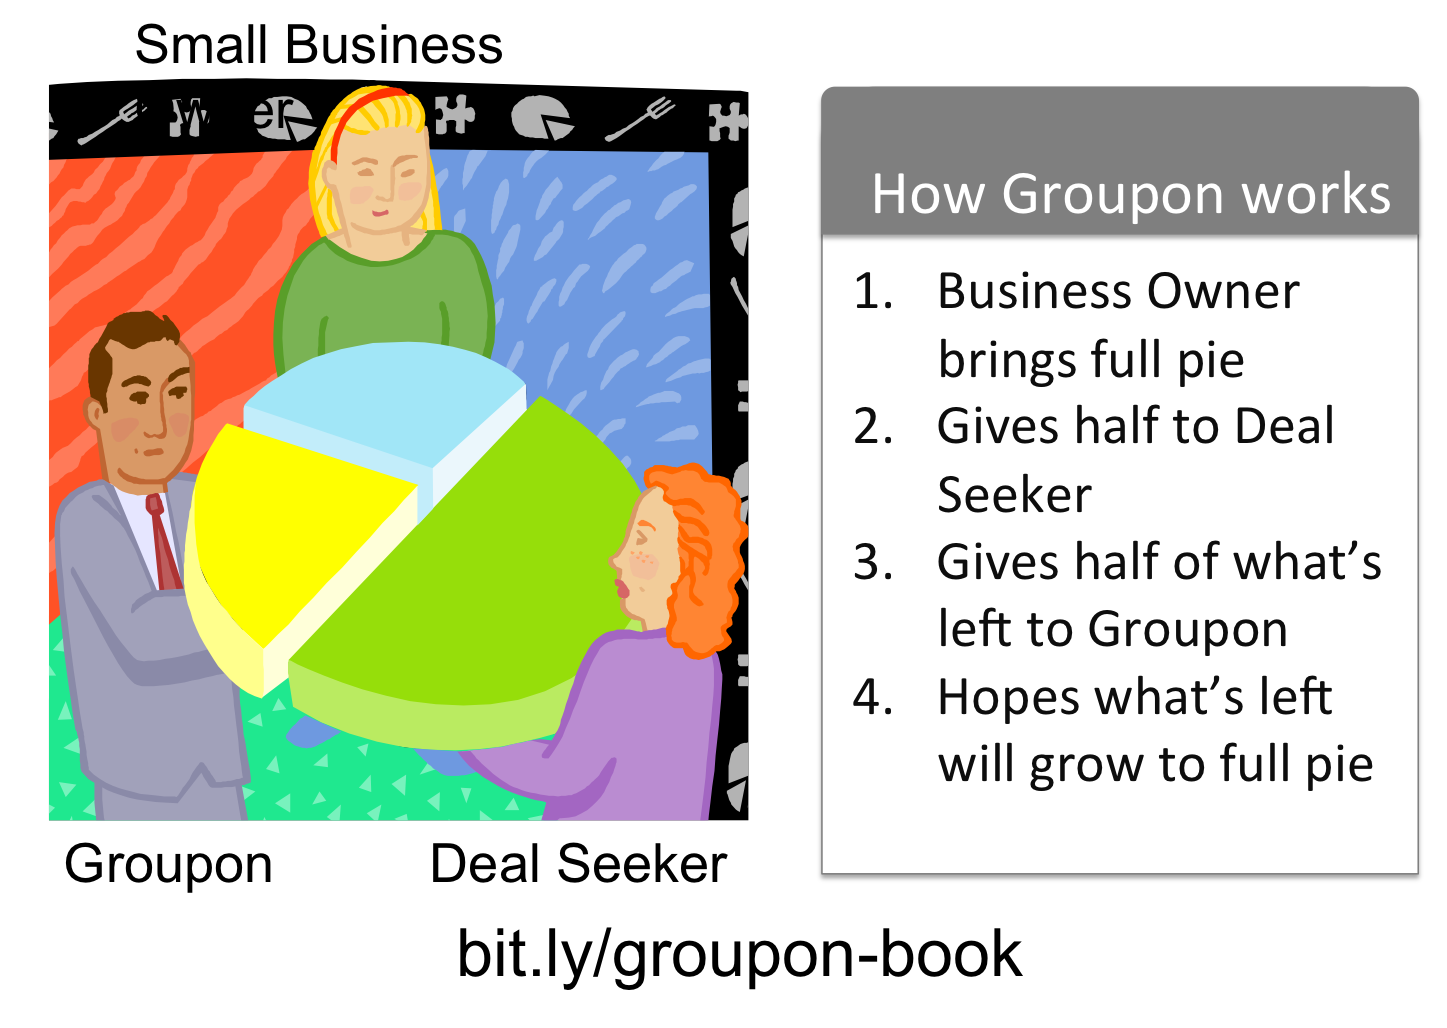 groupon case study essay Cheap custom essay writing services question description marketing strategy-groupon write a 3-5 page paper/analysis on your chosen case study (groupon) this week you will complete the marketing strategy for your chosen case study consider these elements as you write your paper: primary (and.